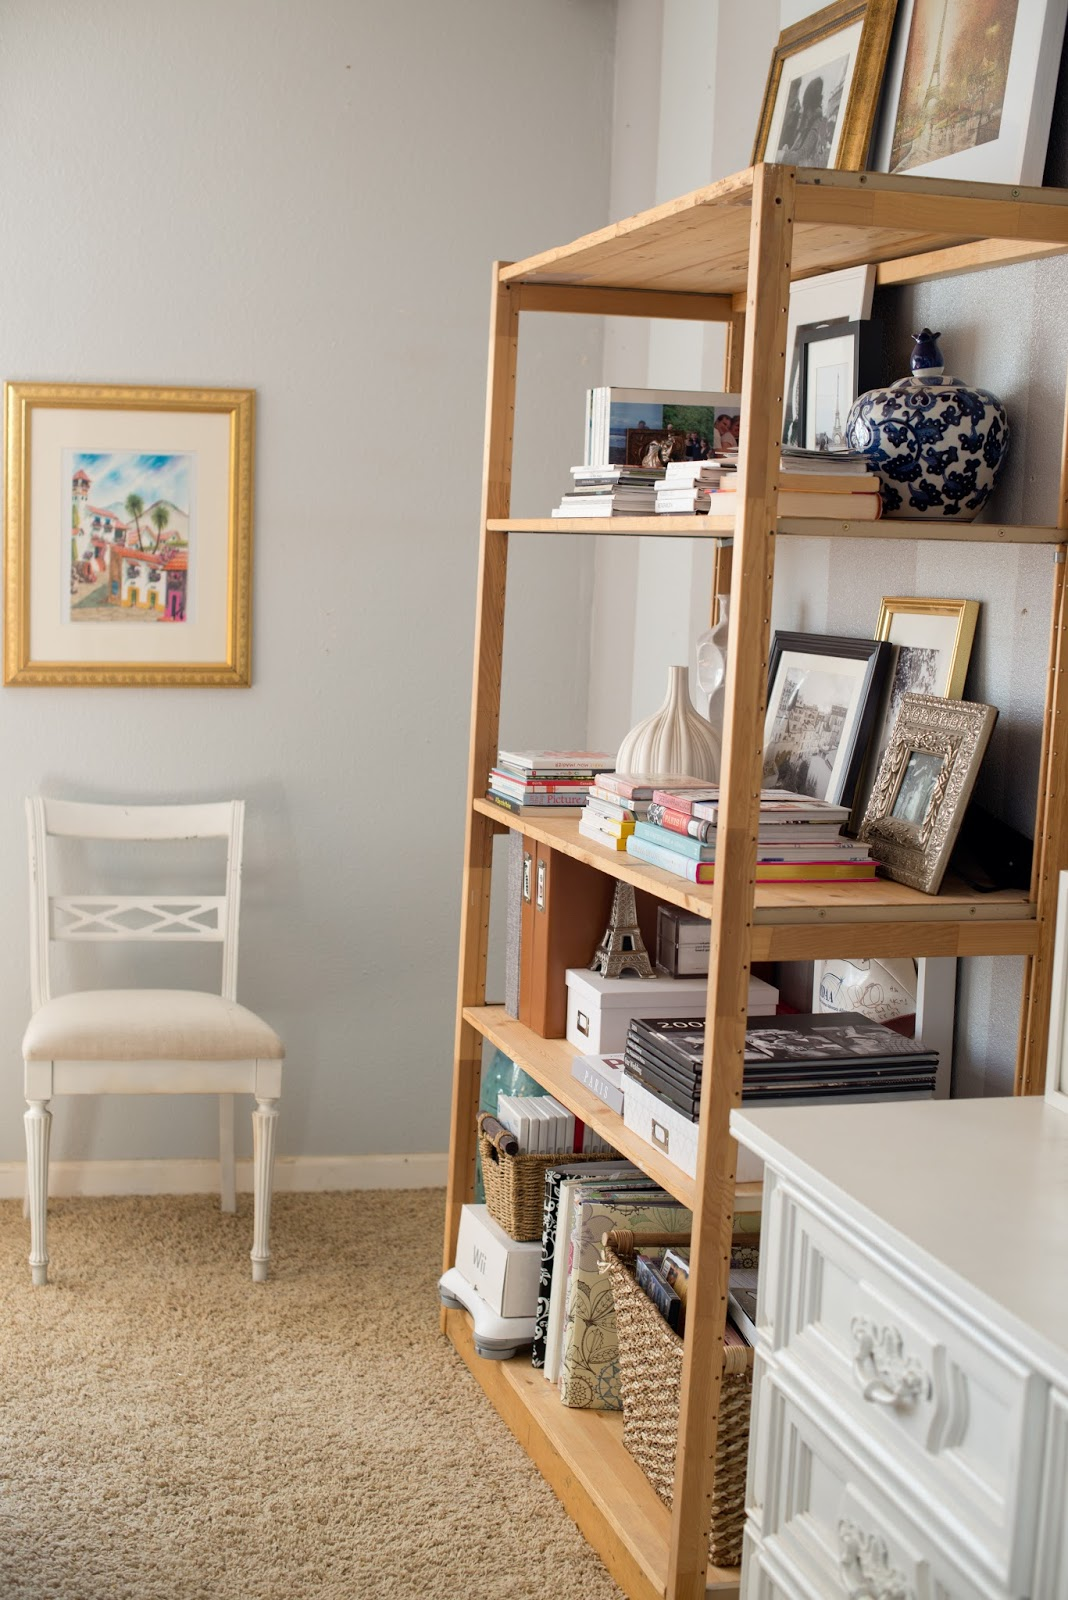 Domestic Fashionista: Our New Dining Room Space